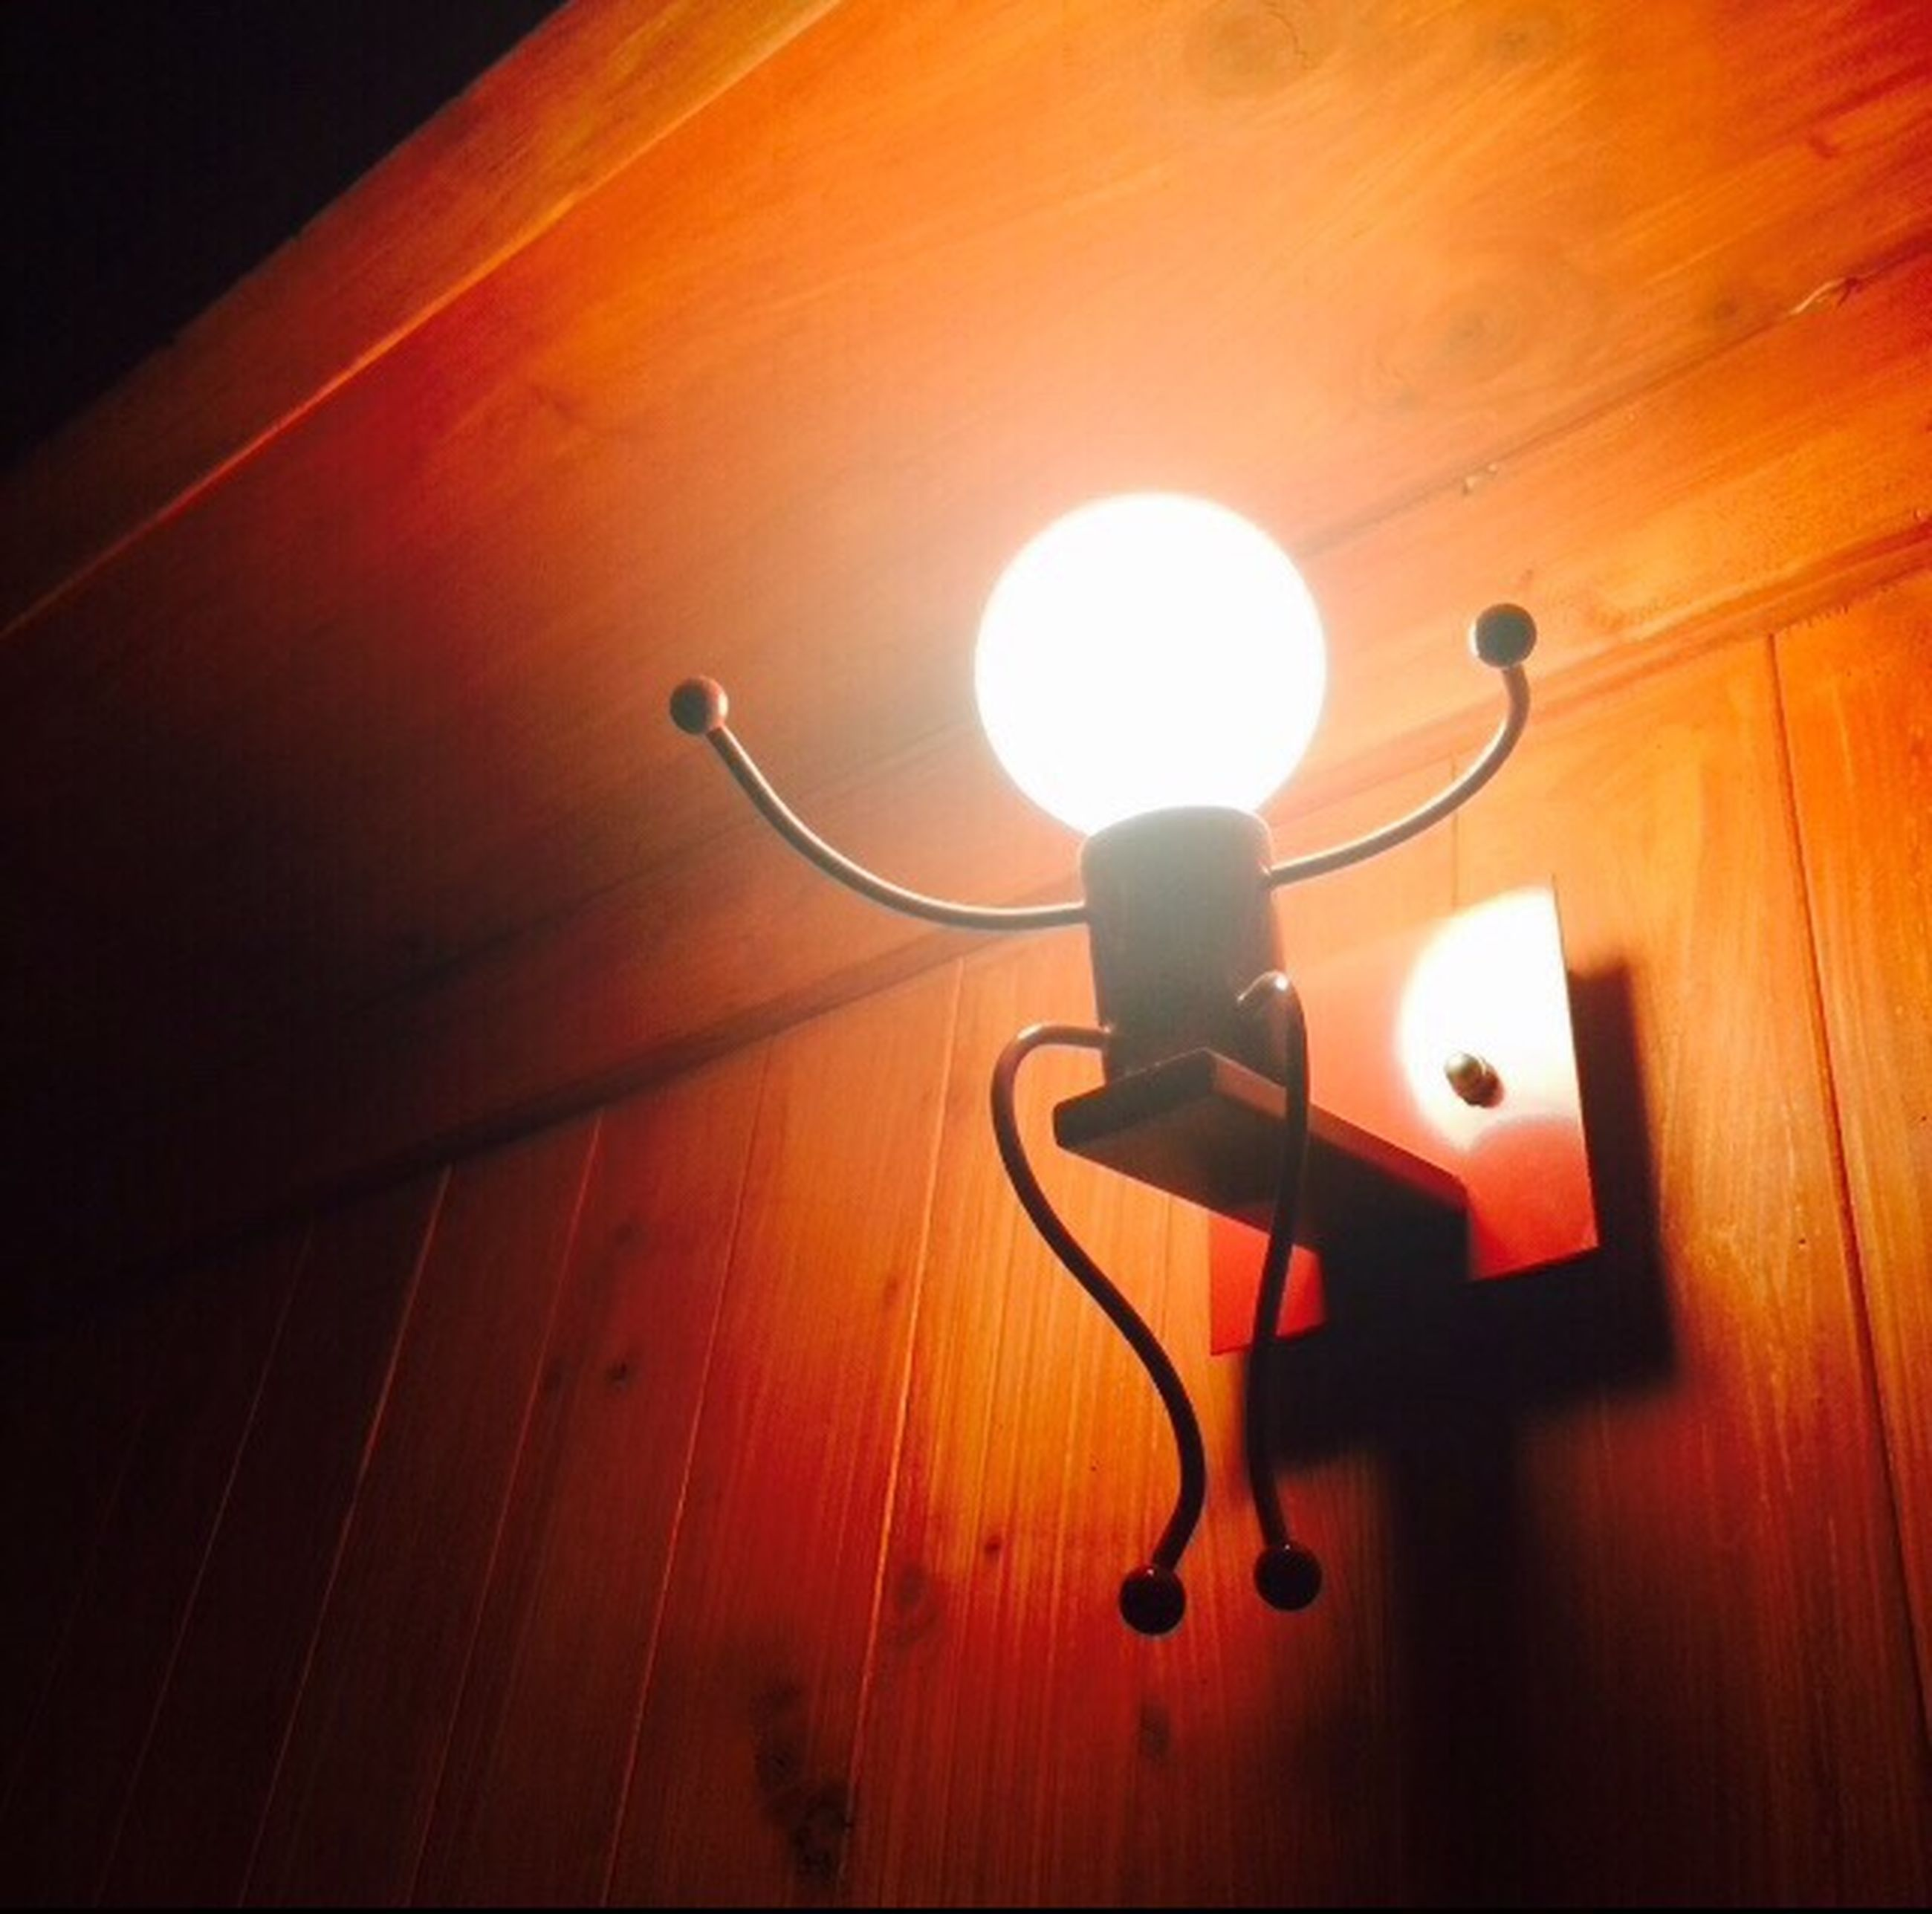 illuminated, indoors, lighting equipment, electricity, glowing, light - natural phenomenon, electric lamp, electric light, night, low angle view, wood - material, hanging, wall - building feature, lamp, lit, ceiling, light bulb, no people, light fixture, lantern